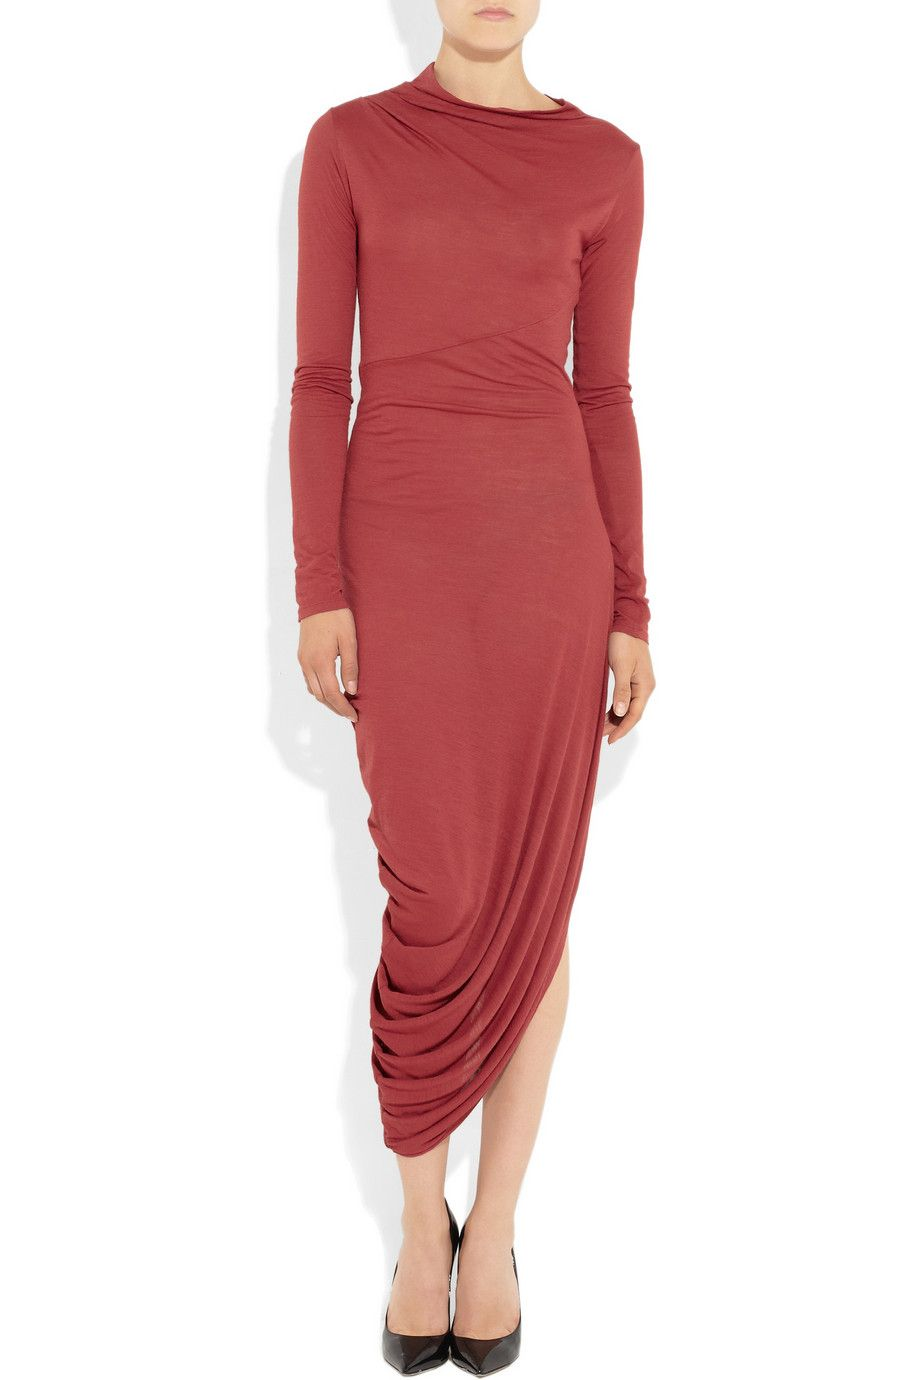 Le Meilleur Amanda Wakeley Asymmetric Draped Jersey Dress Net A Ce Mois Ci